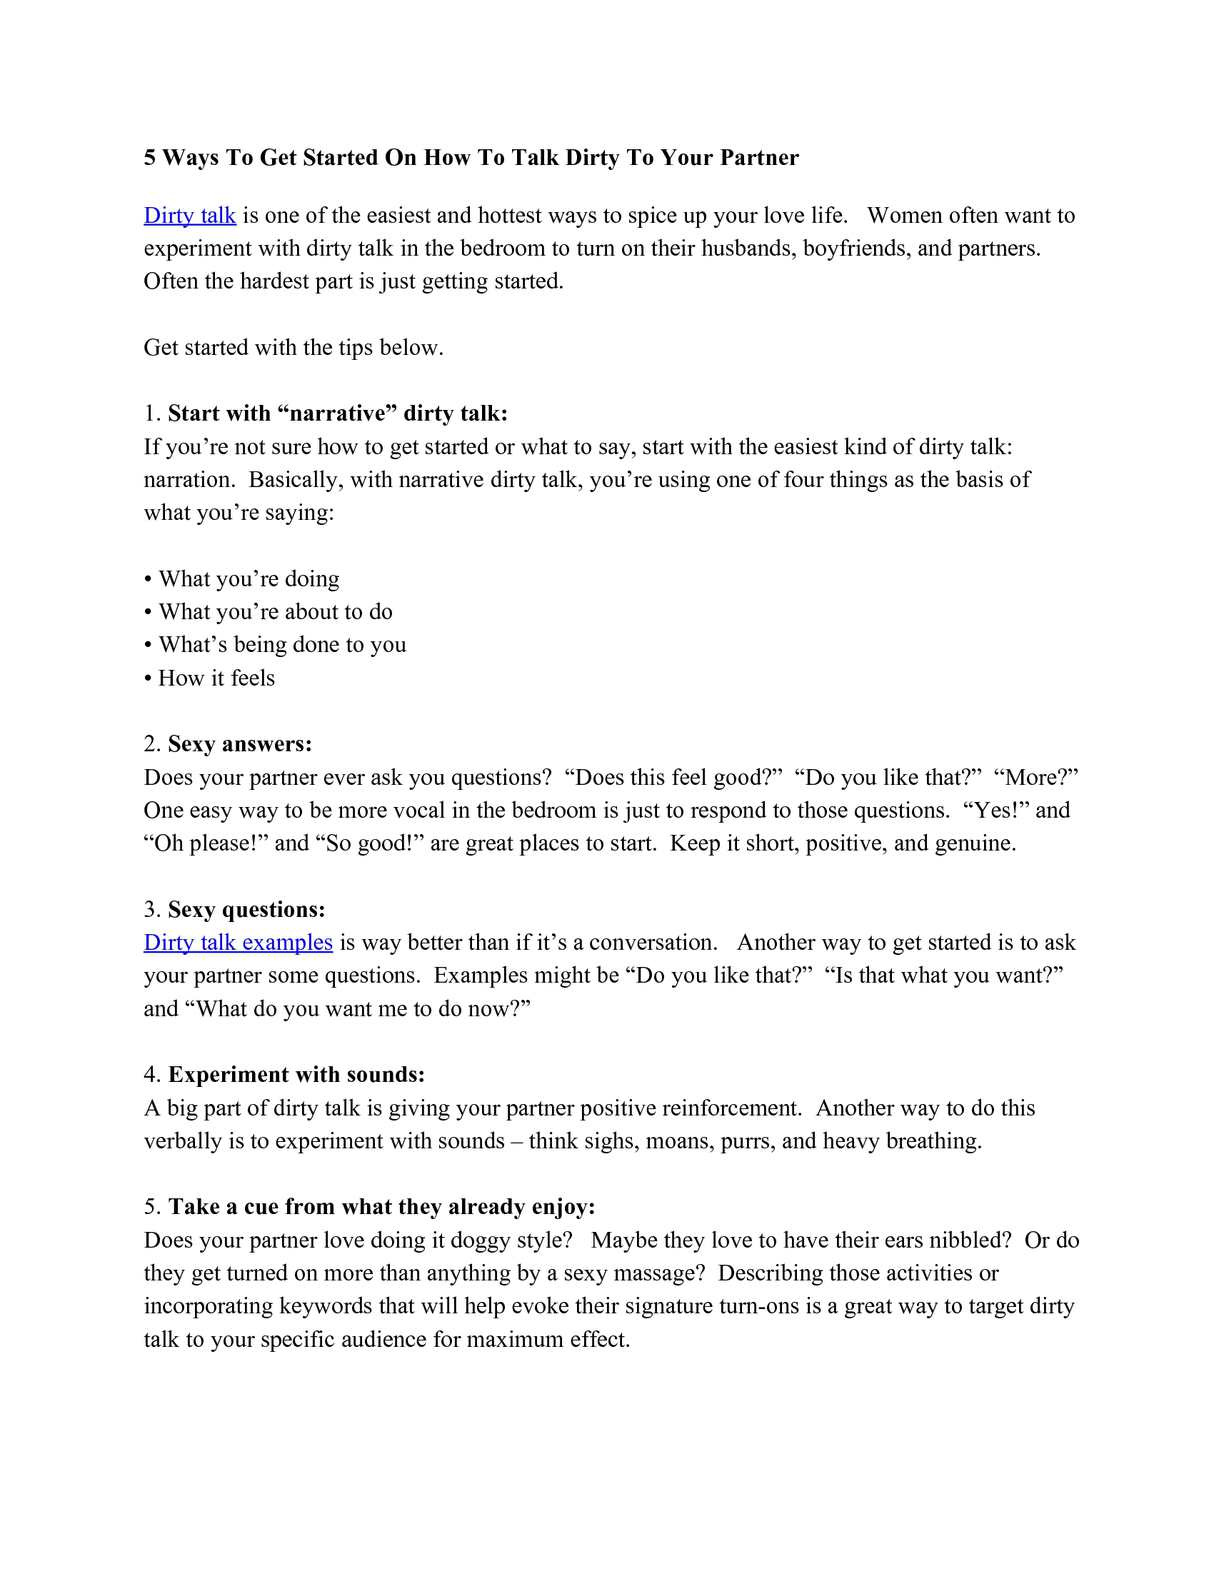 Good Dirty Talk Phrases. How to Dirty Talk - What to Say